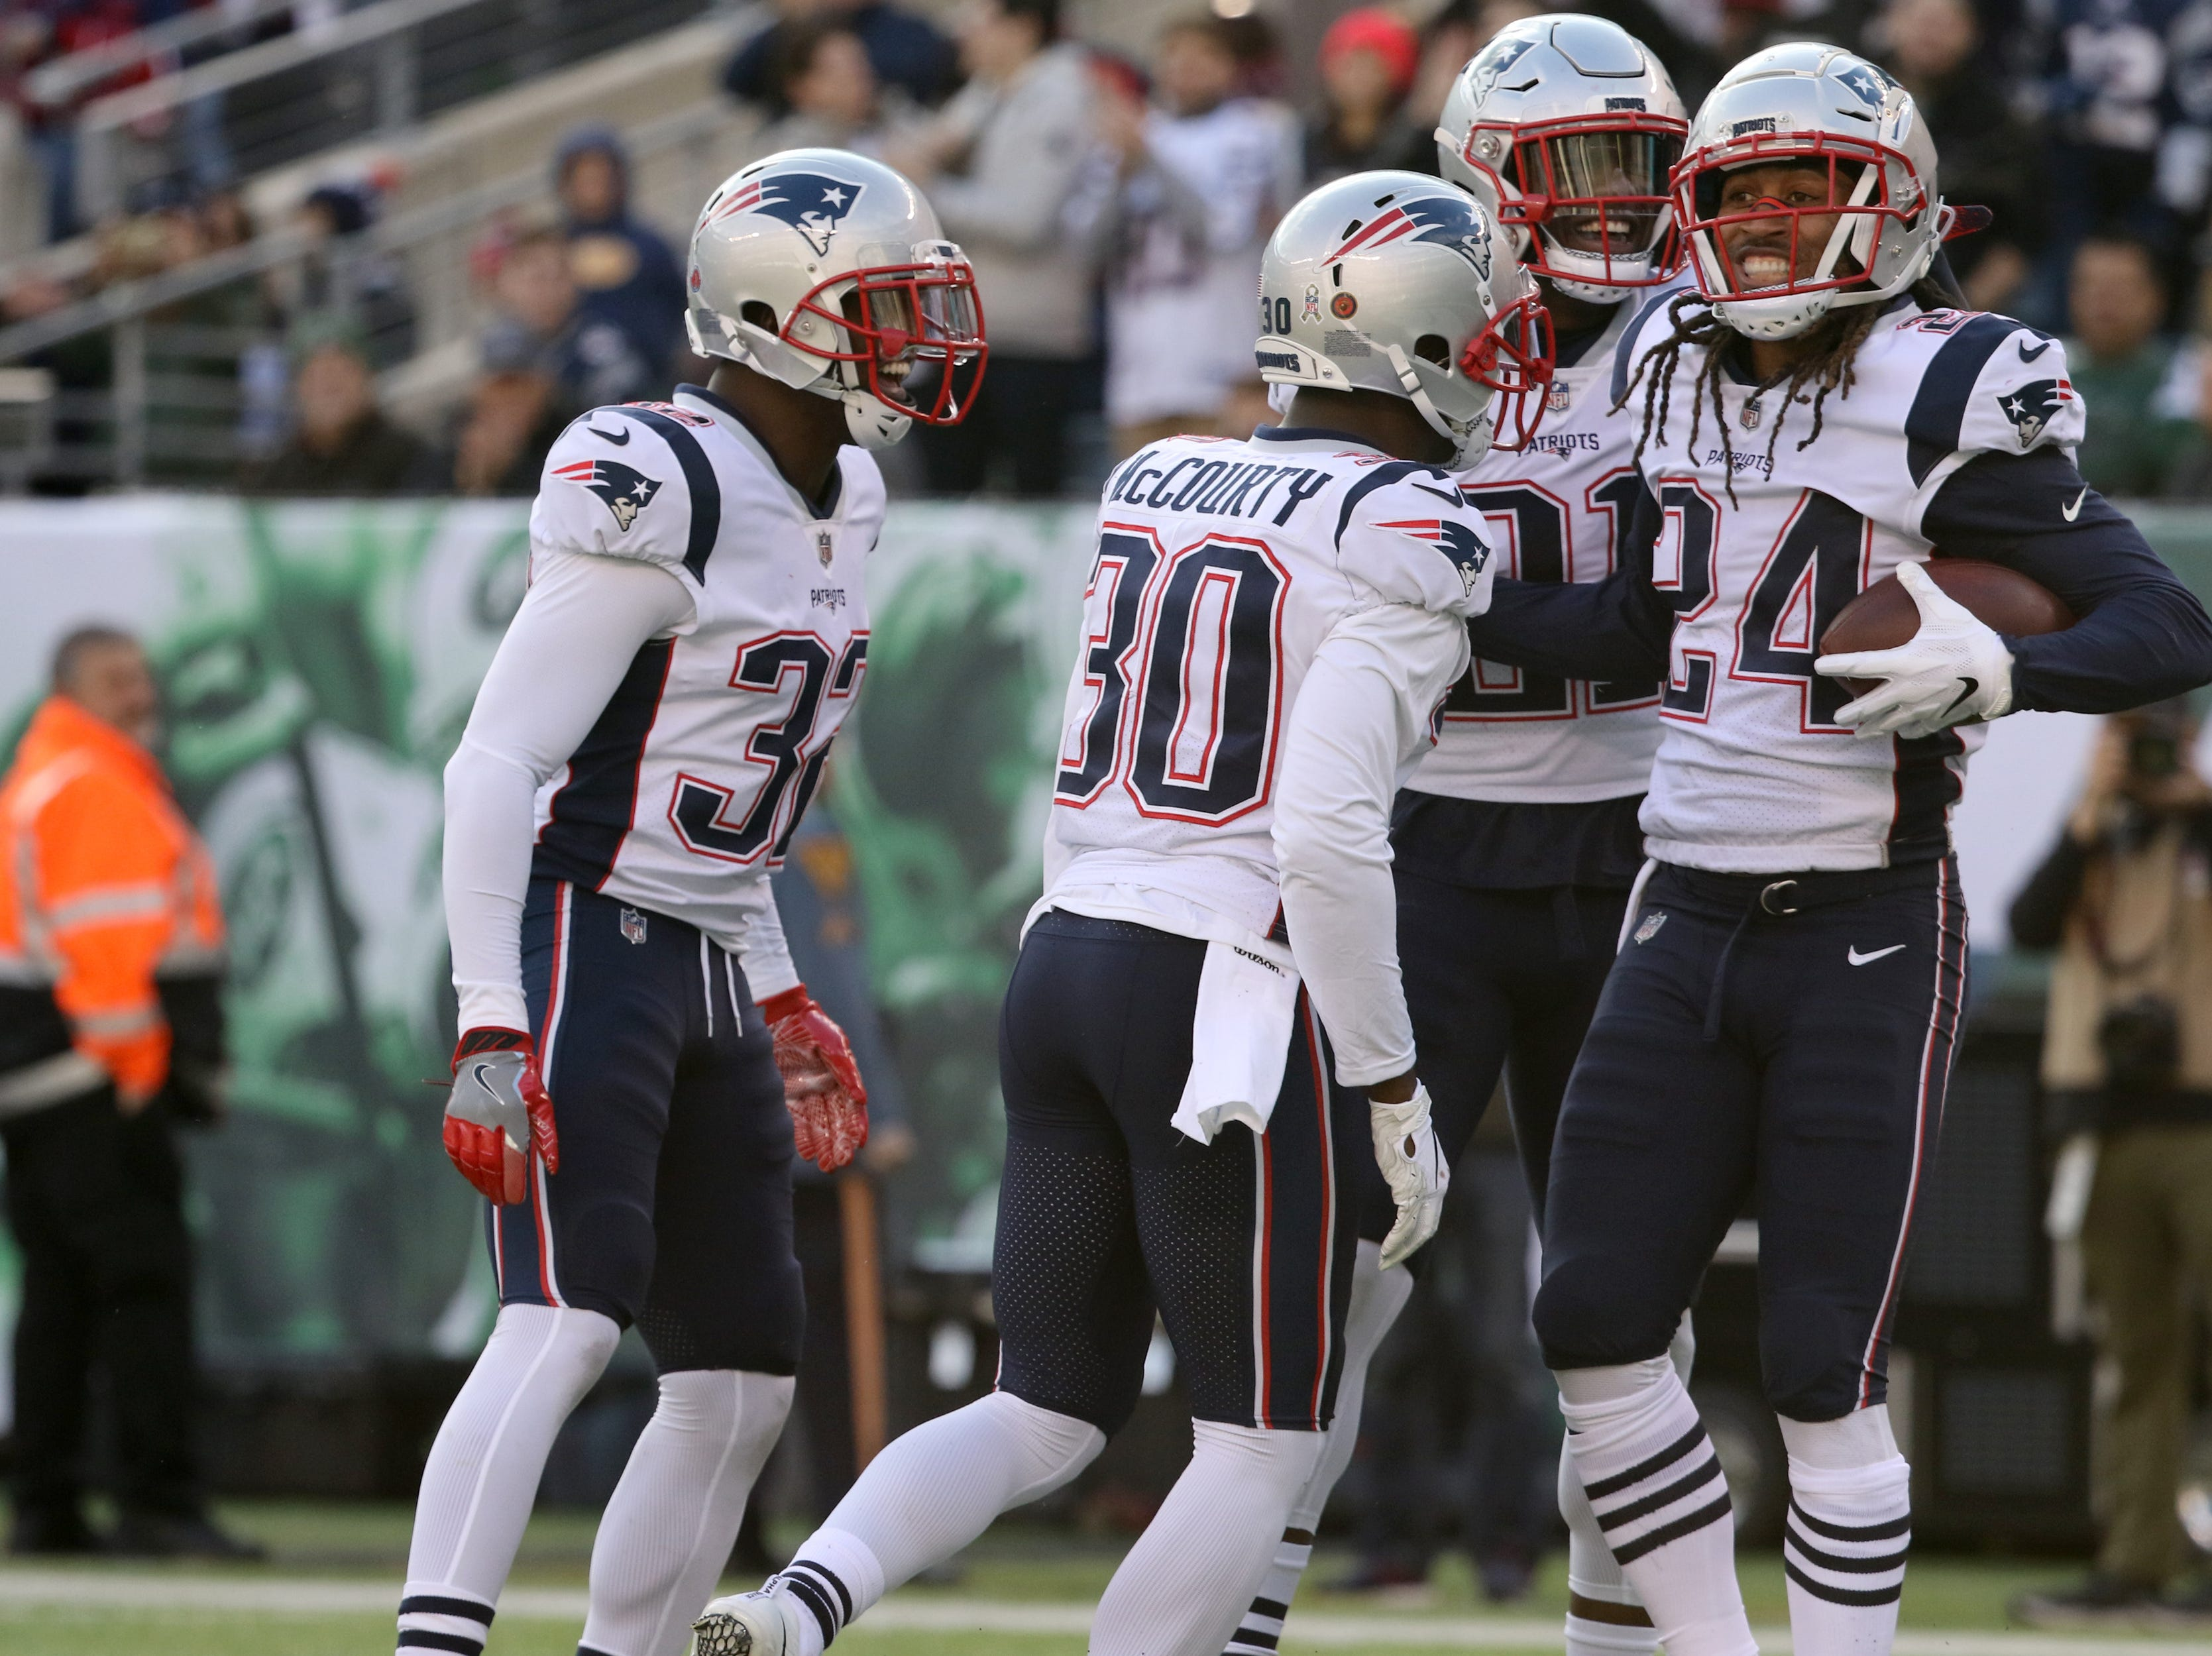 Stephon Gilmore (24), is surrounded by his Patriots teammates after catching a long pass. Sunday, November 25, 2018